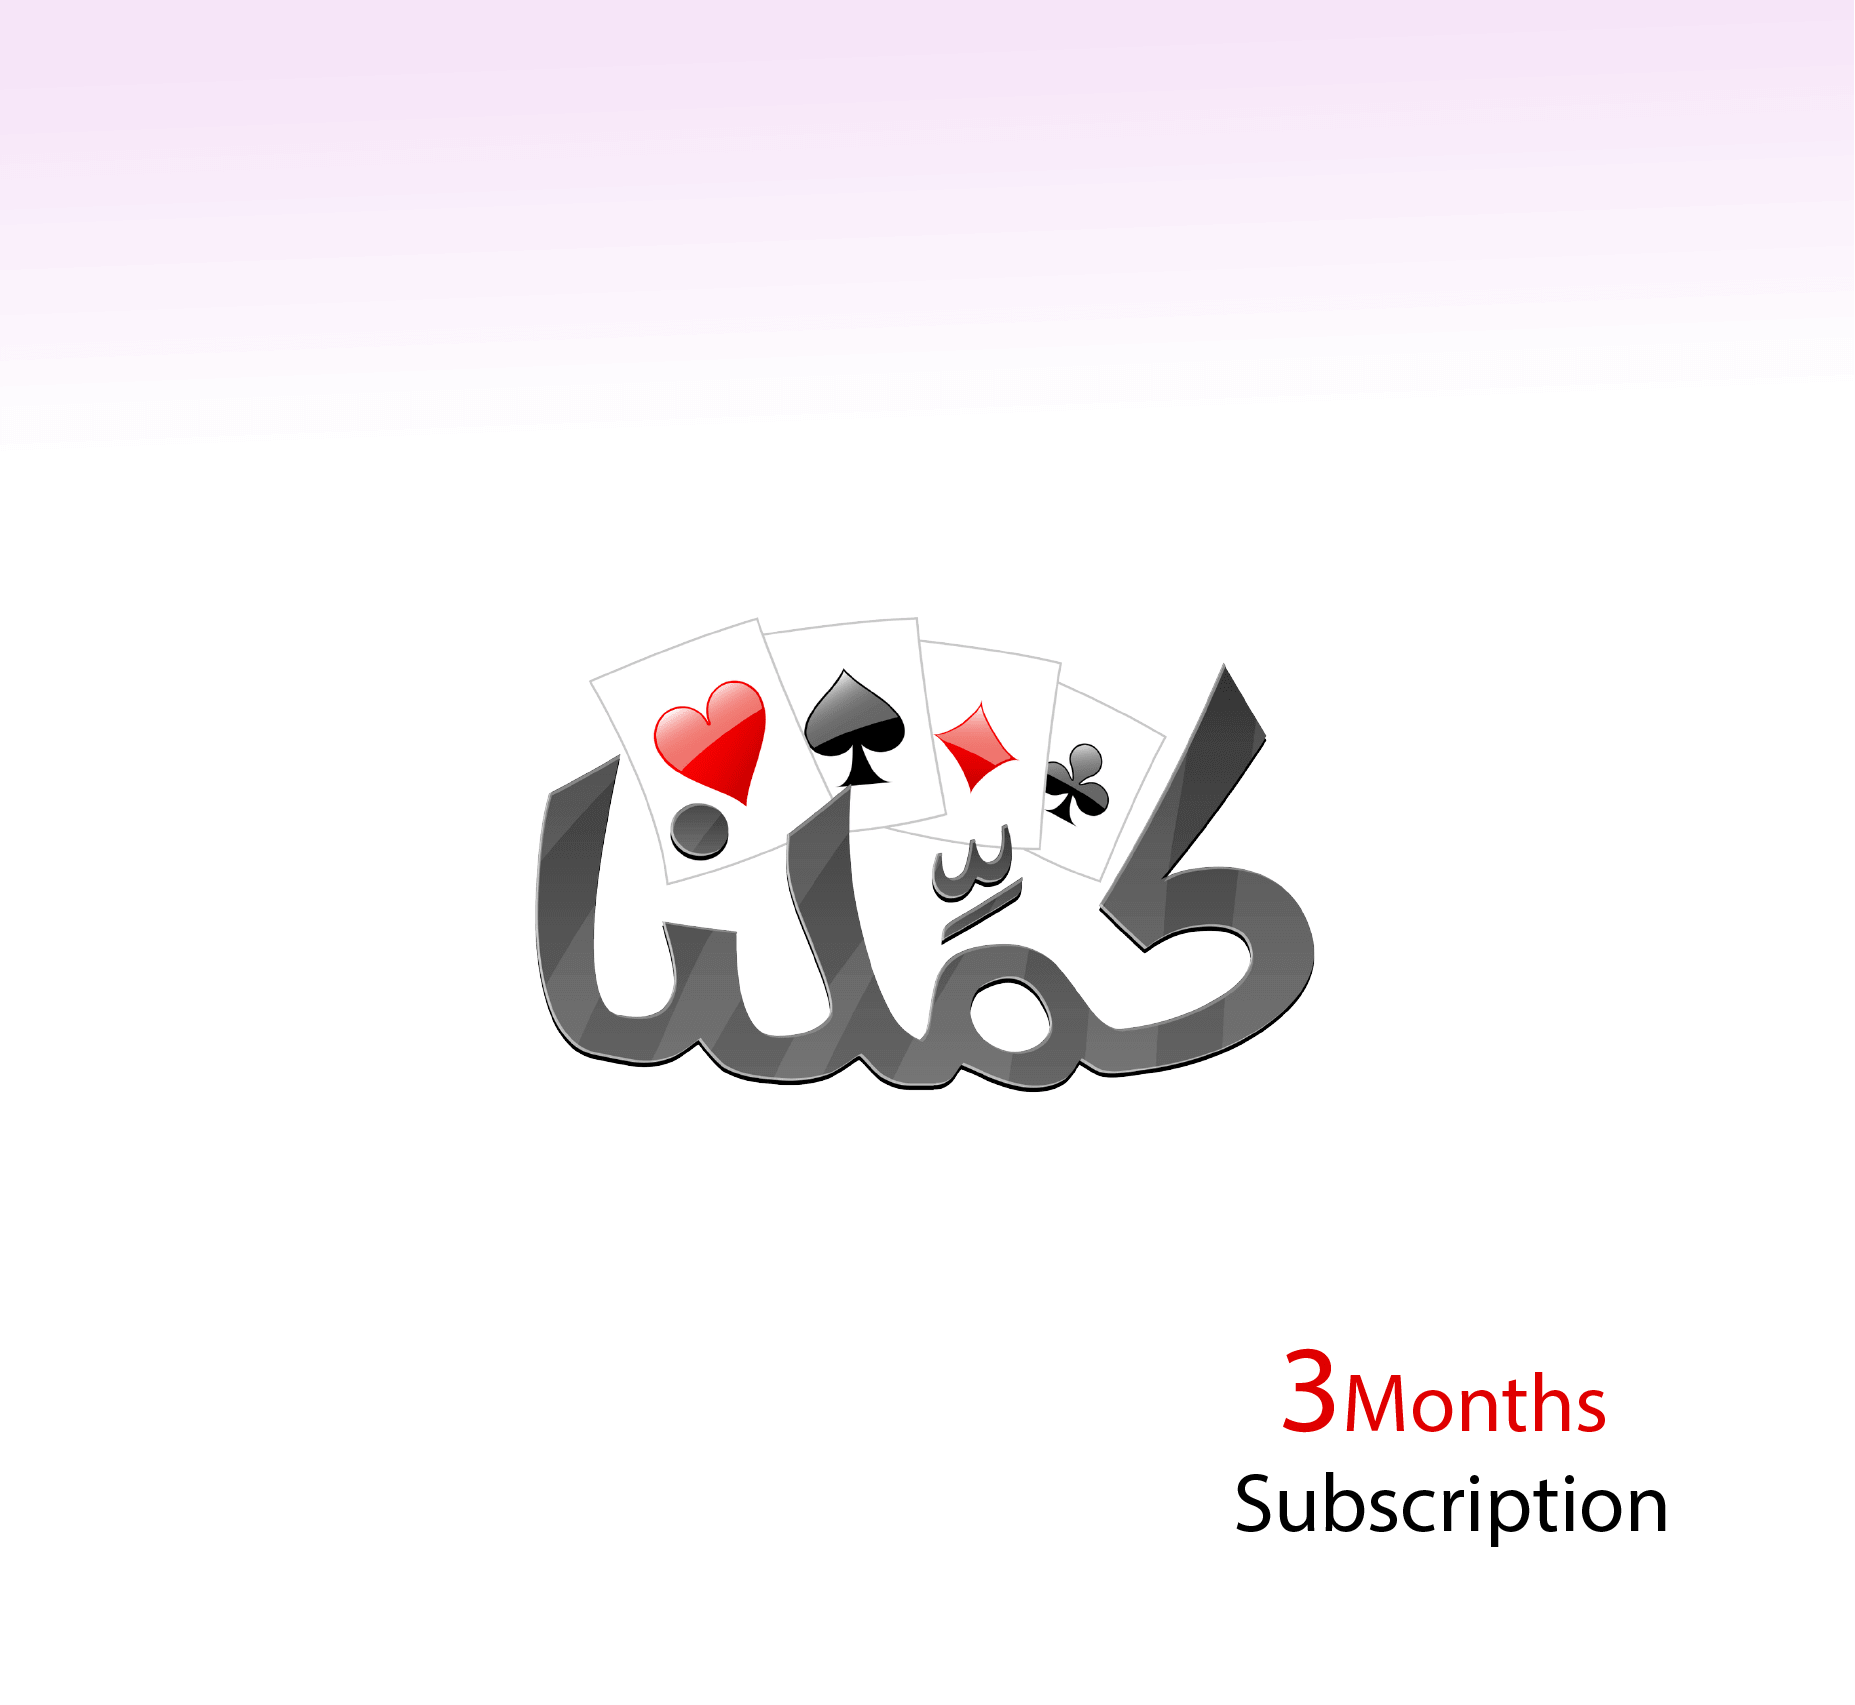 Kamelna [KSA] - 3 Months Subscription